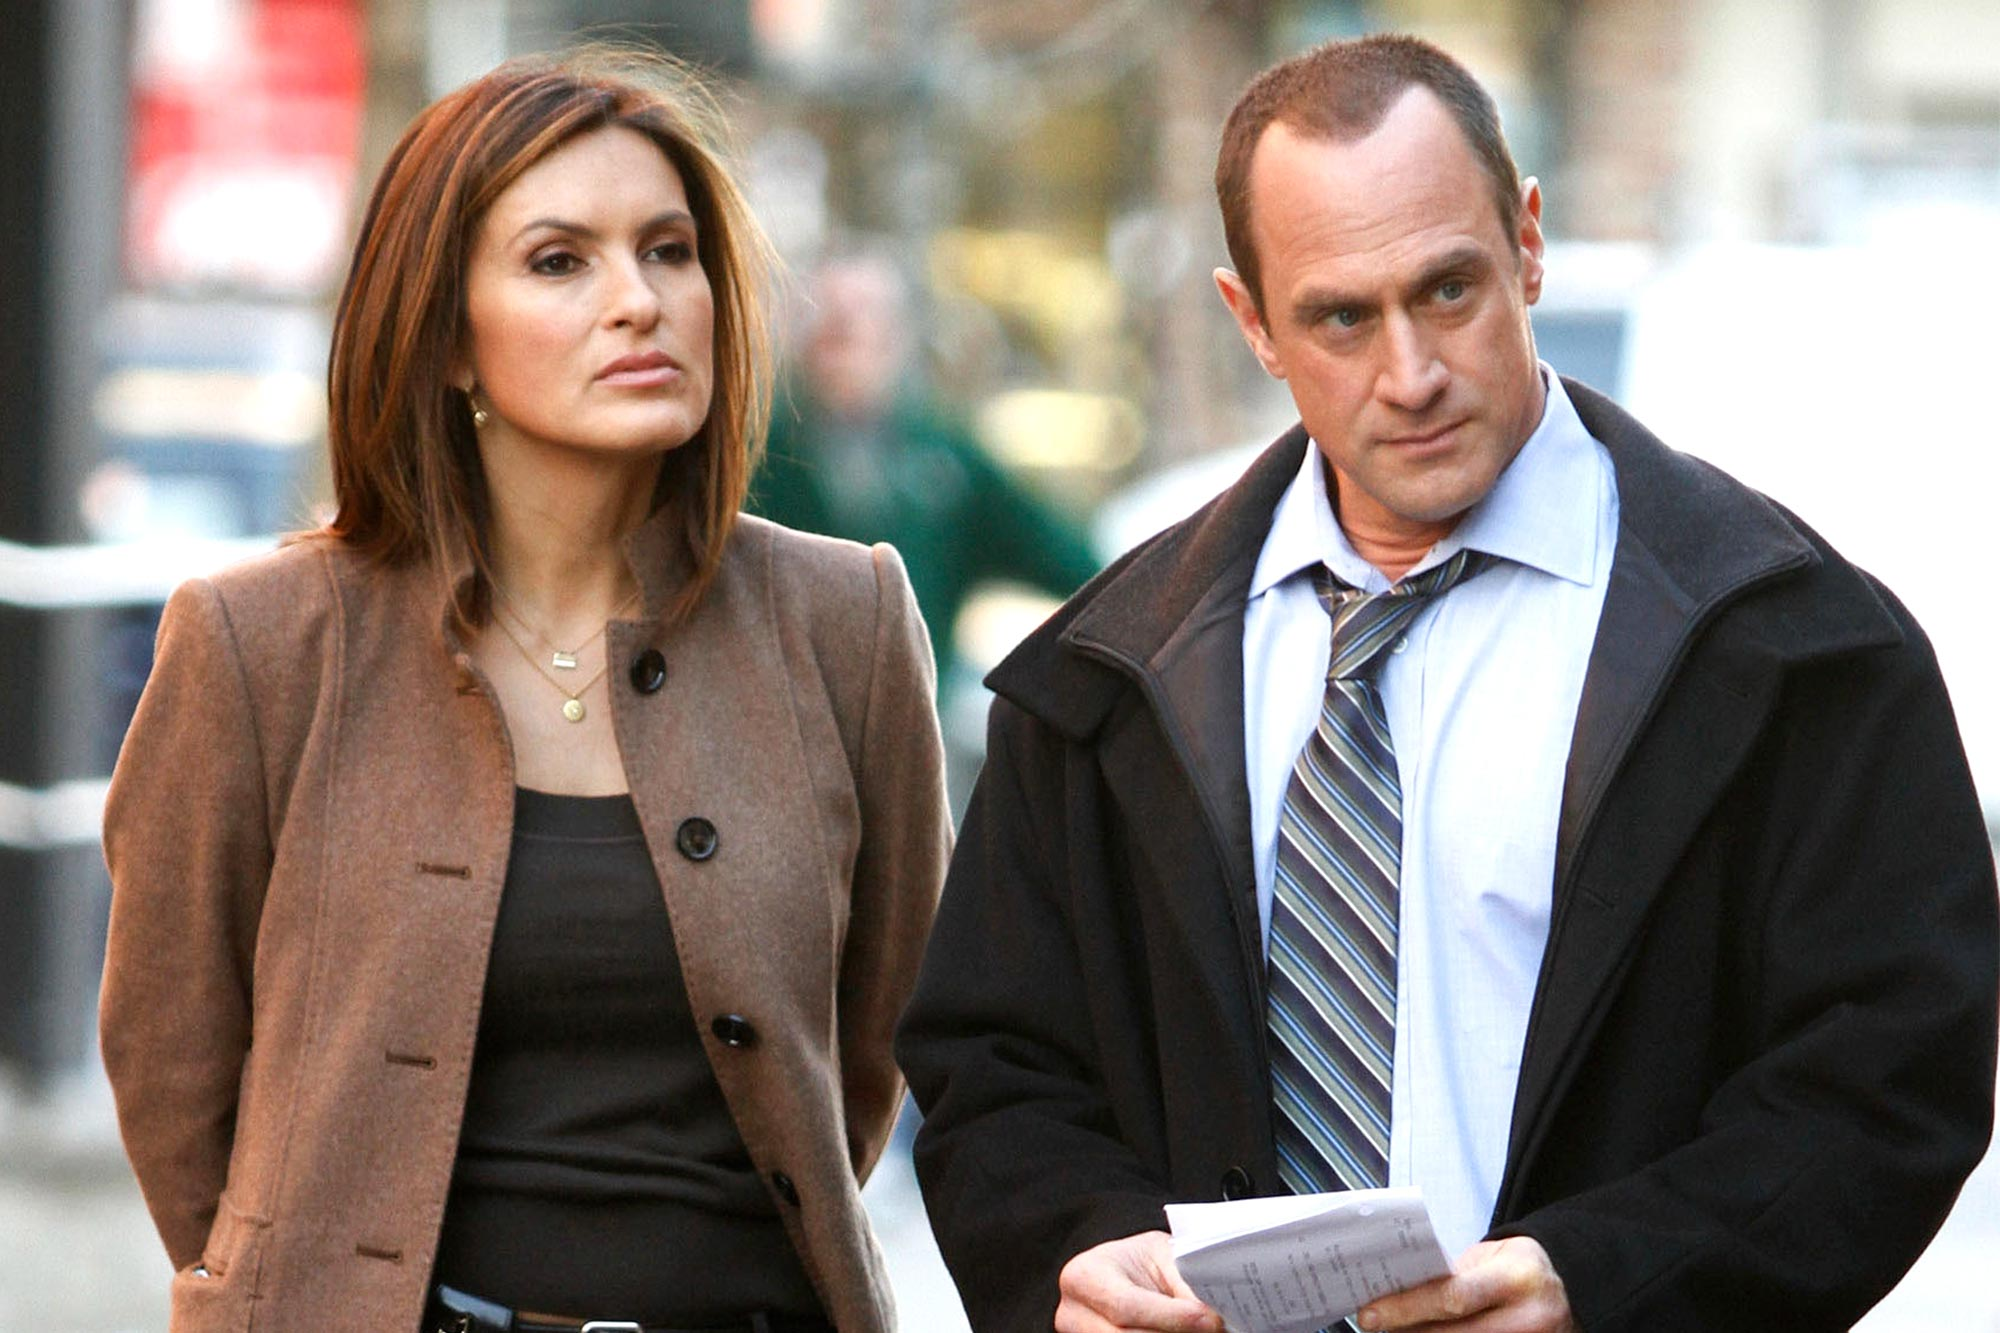 Mariska Hargitay and Chris Meloni